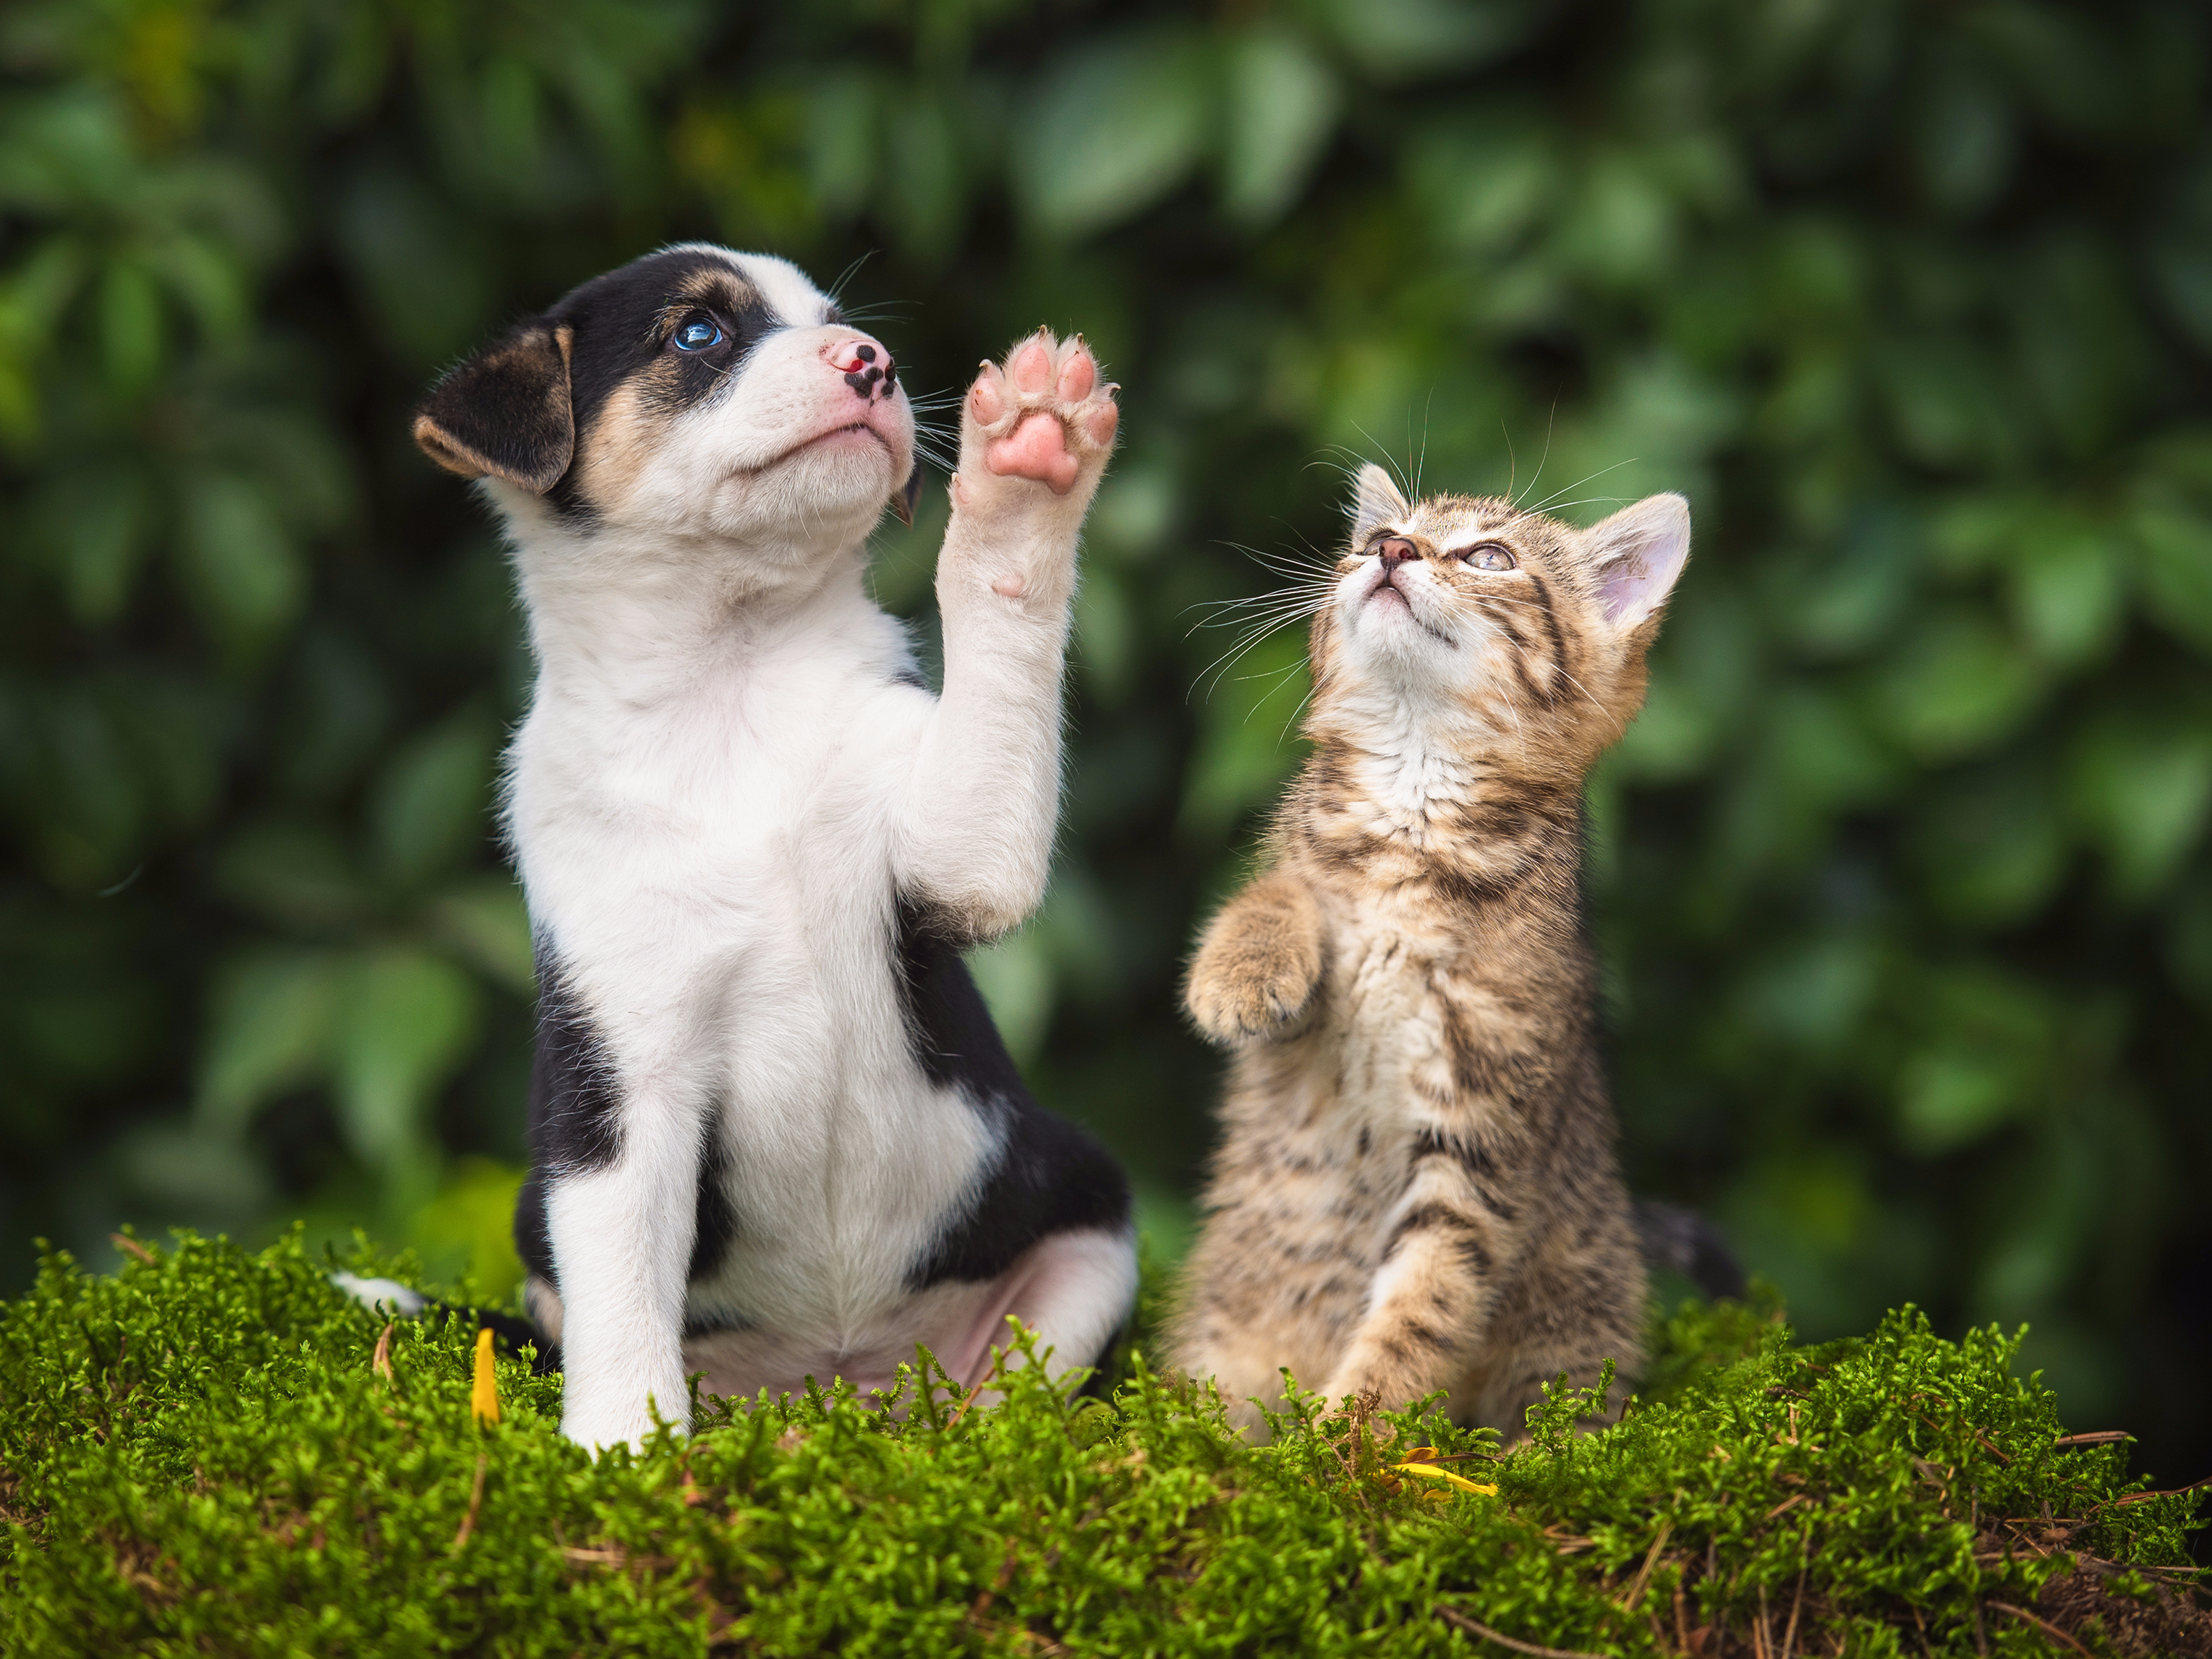 A pet expert explains the differences between dog and cat owners ...